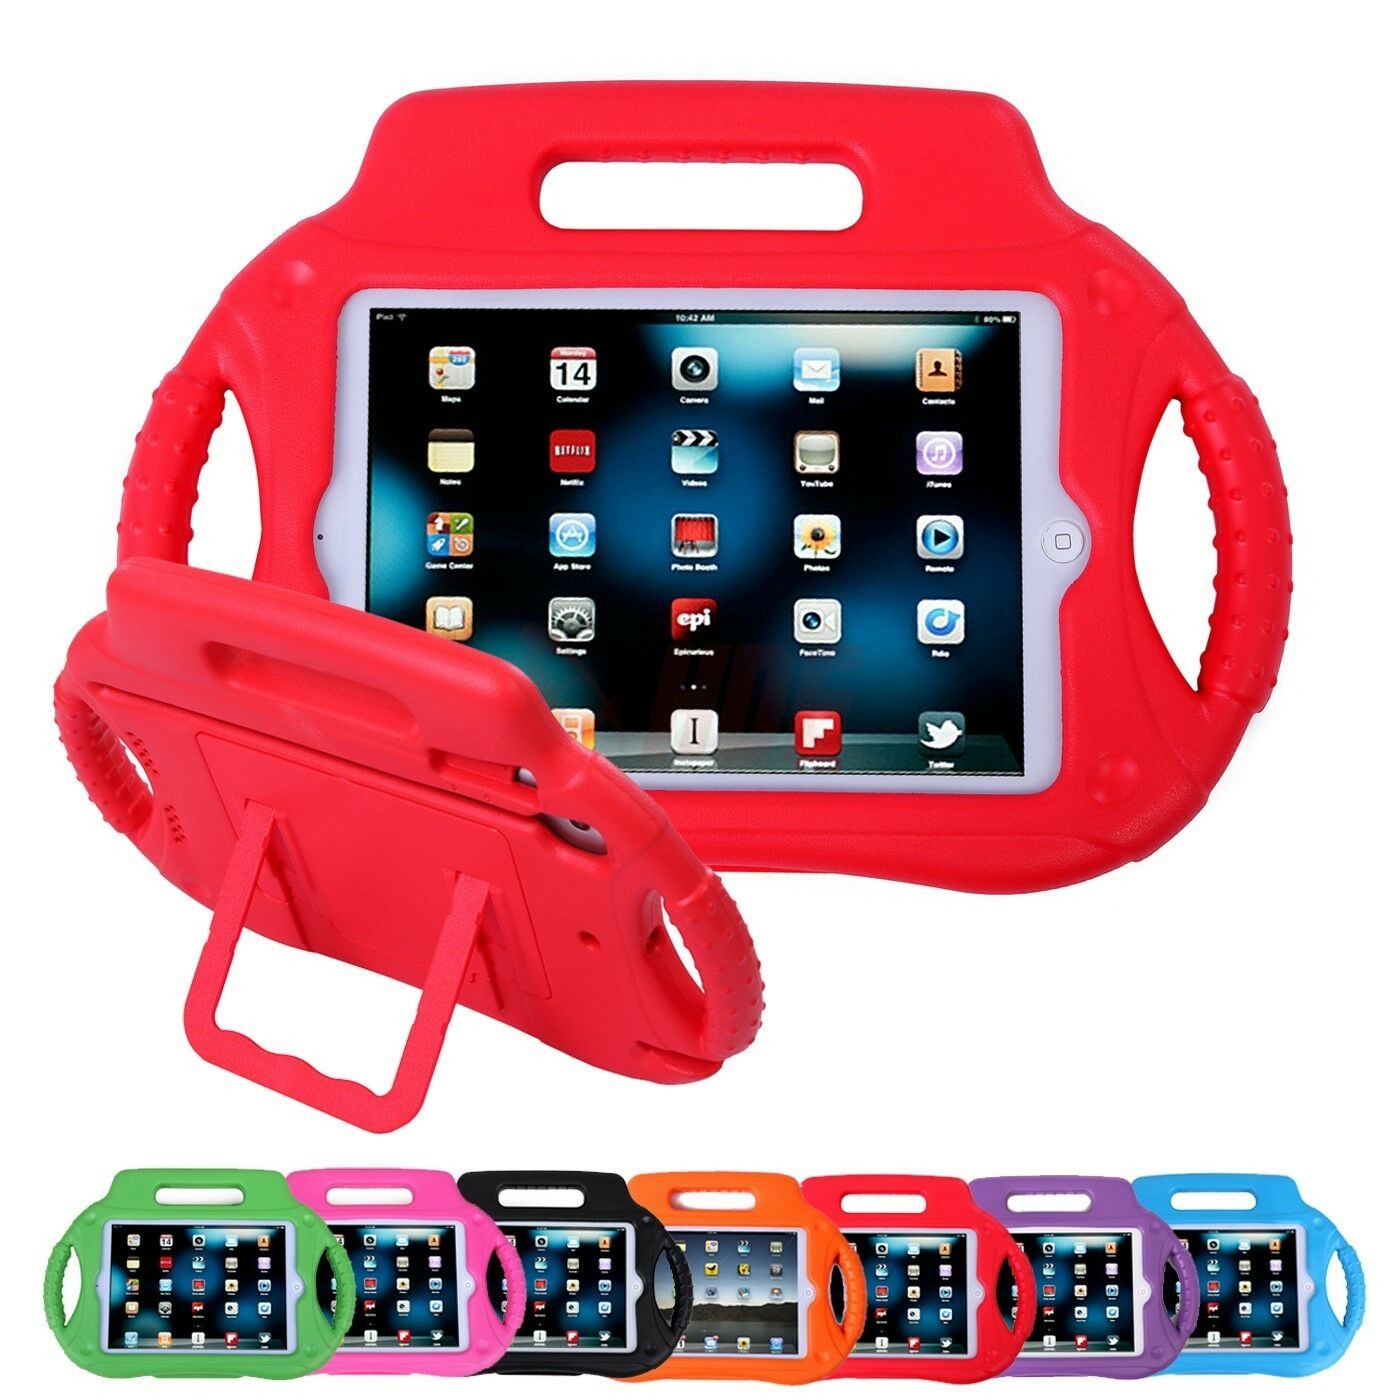 how to set up an ipad mini for a child